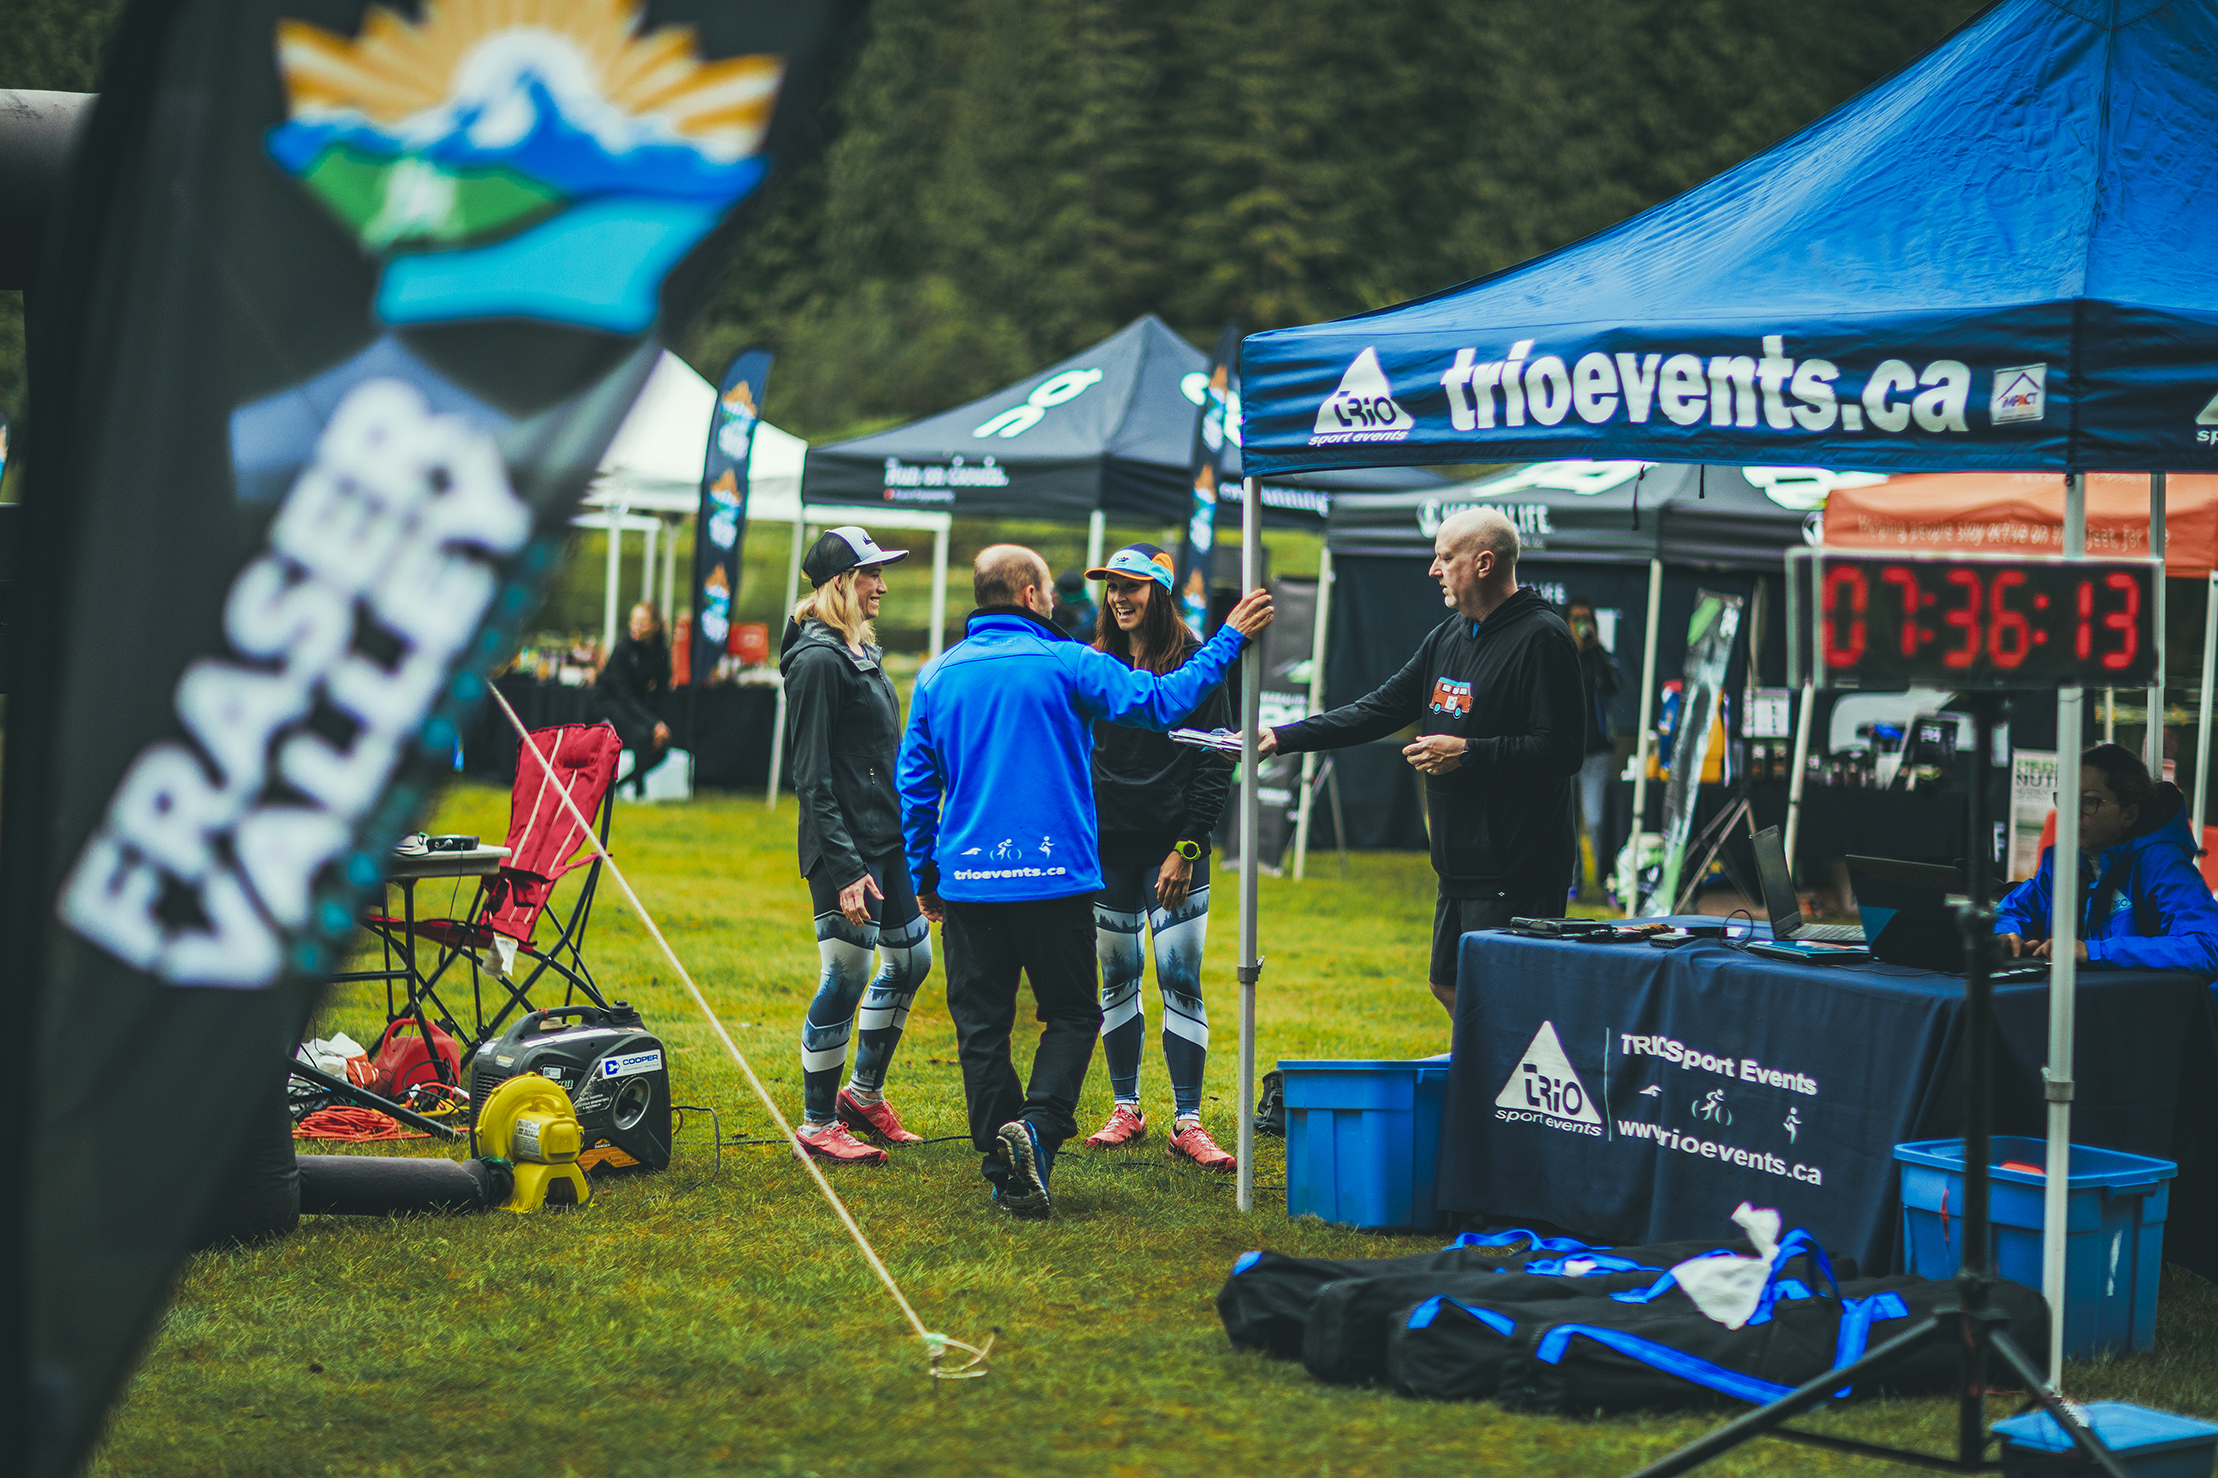 Fraser Valley Trail Races - Bear Mountain - IMG_1128 by Brice Ferre Studio - Vancouver Portrait Adventure and Athlete Photographer.jpg